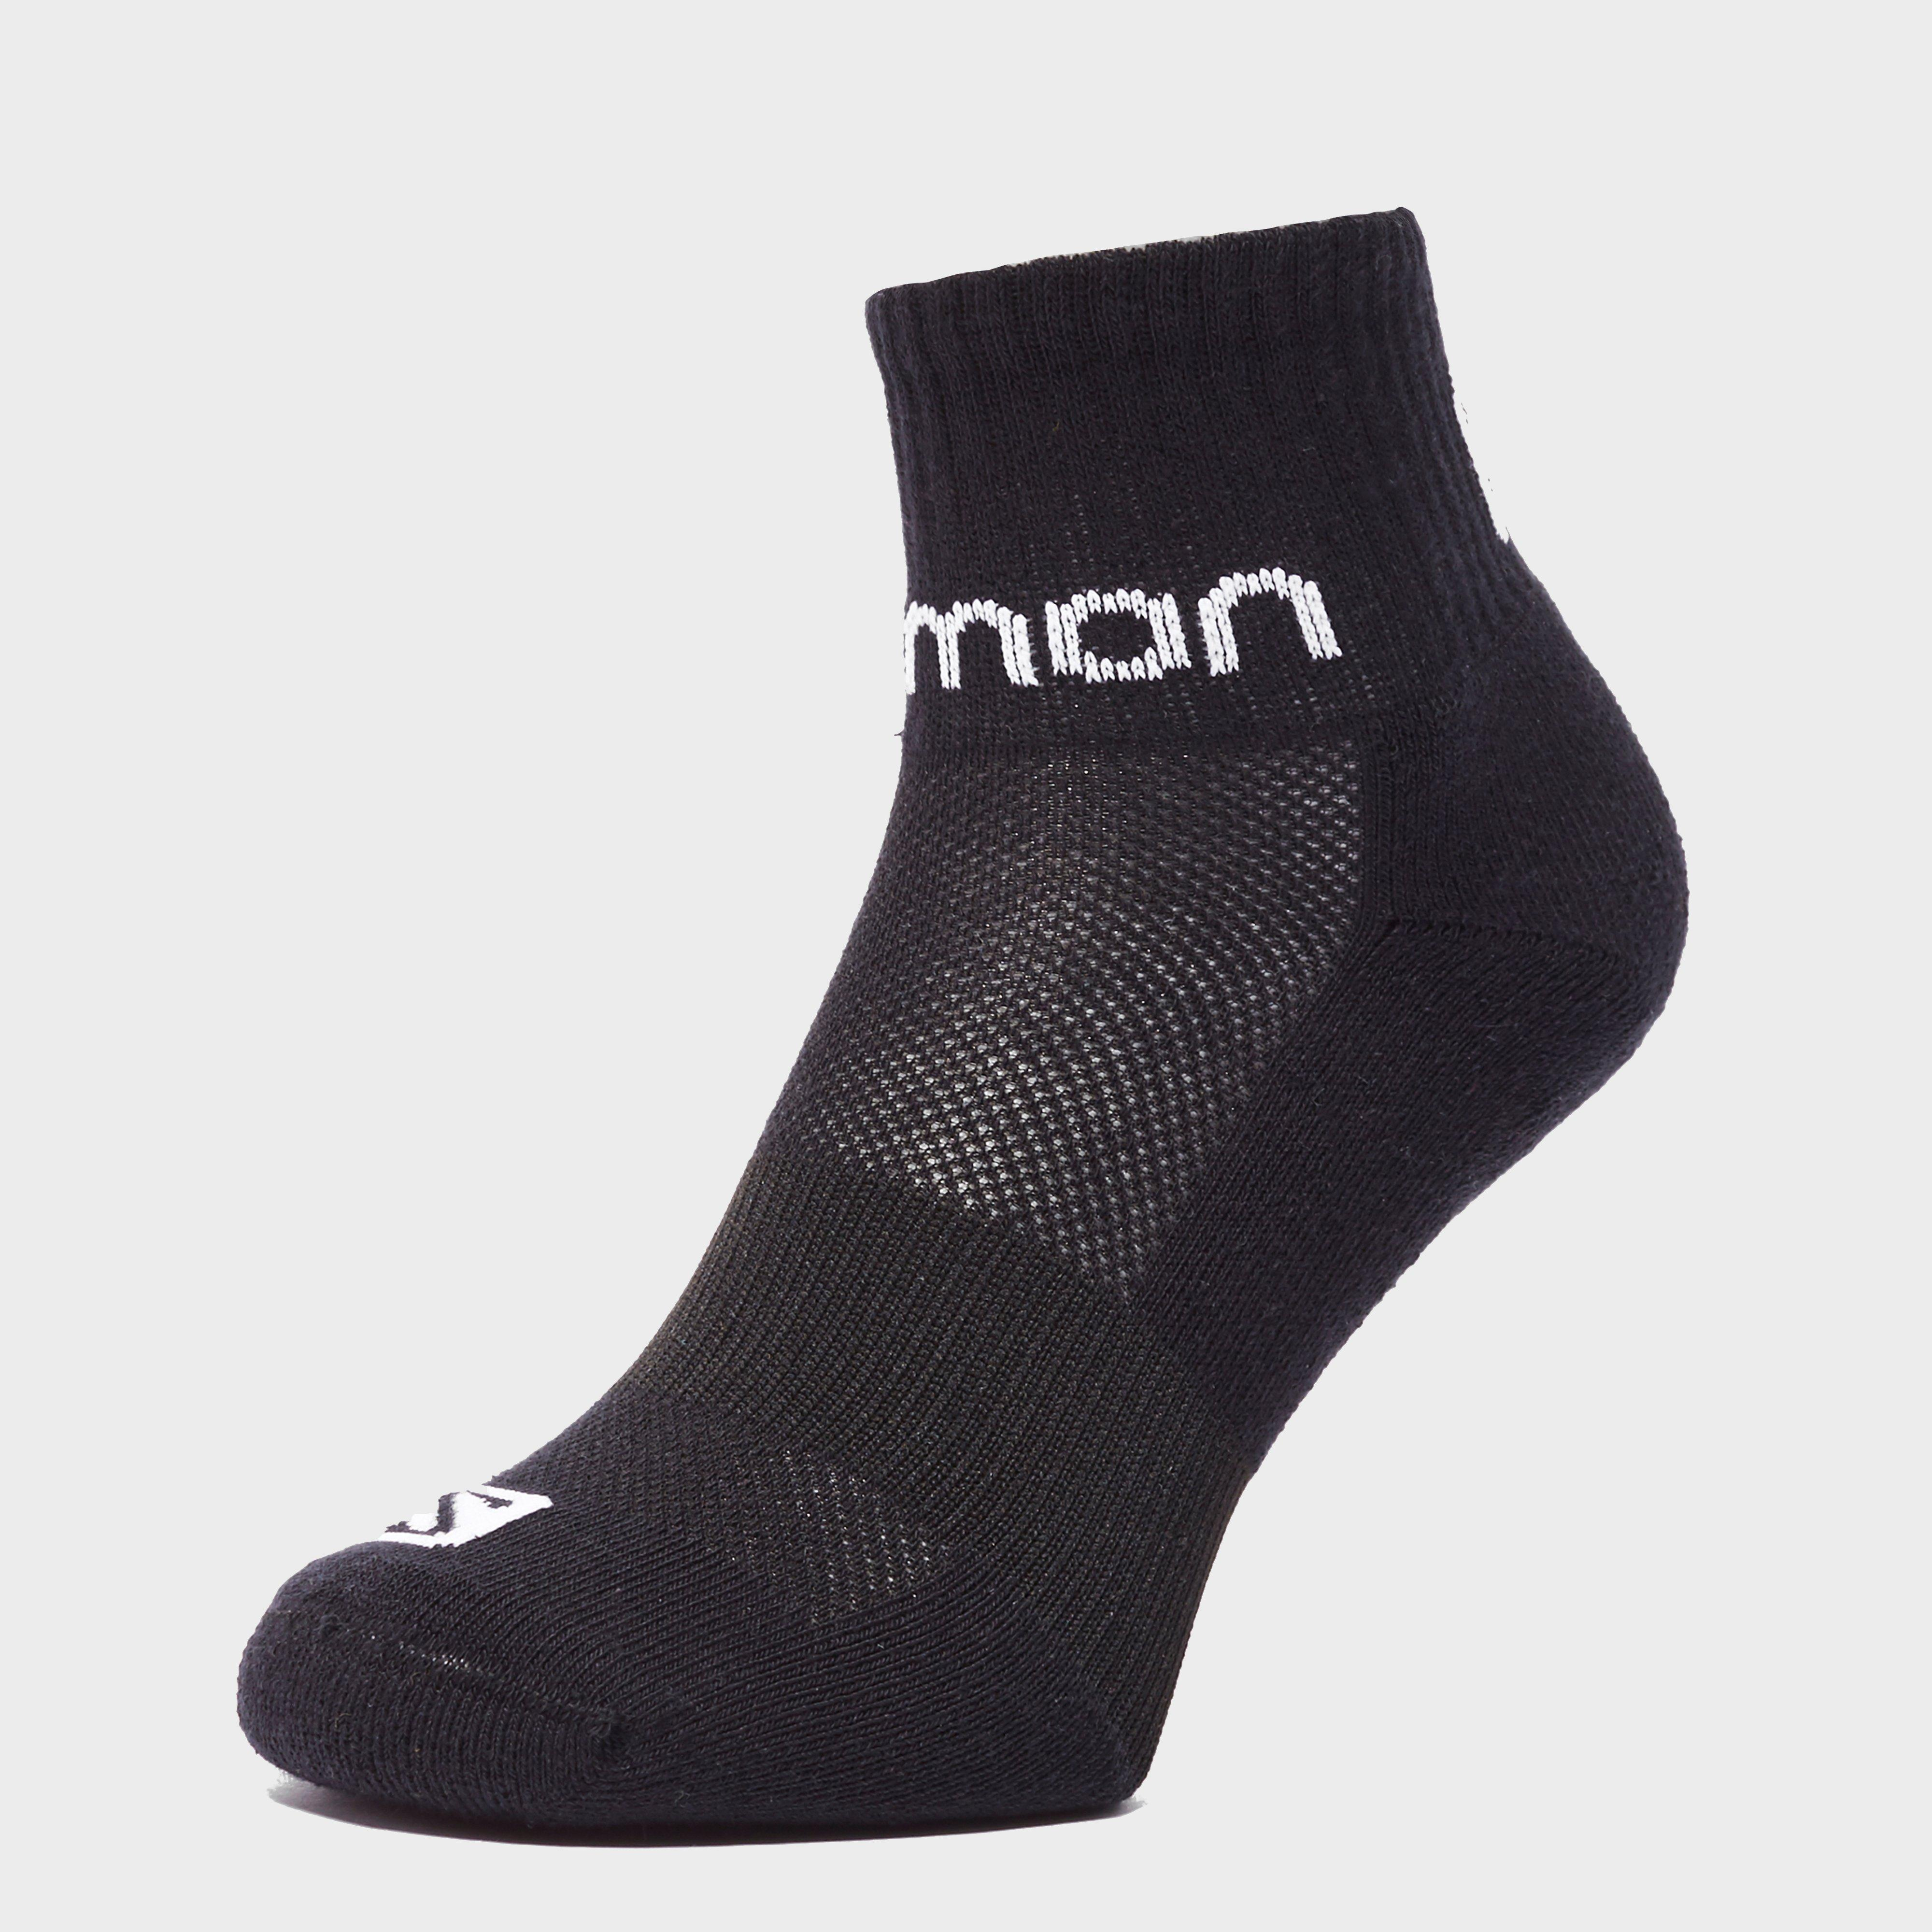 Salomon Socks Salomon Socks Evasion 2-Pack Socks - Black, Black